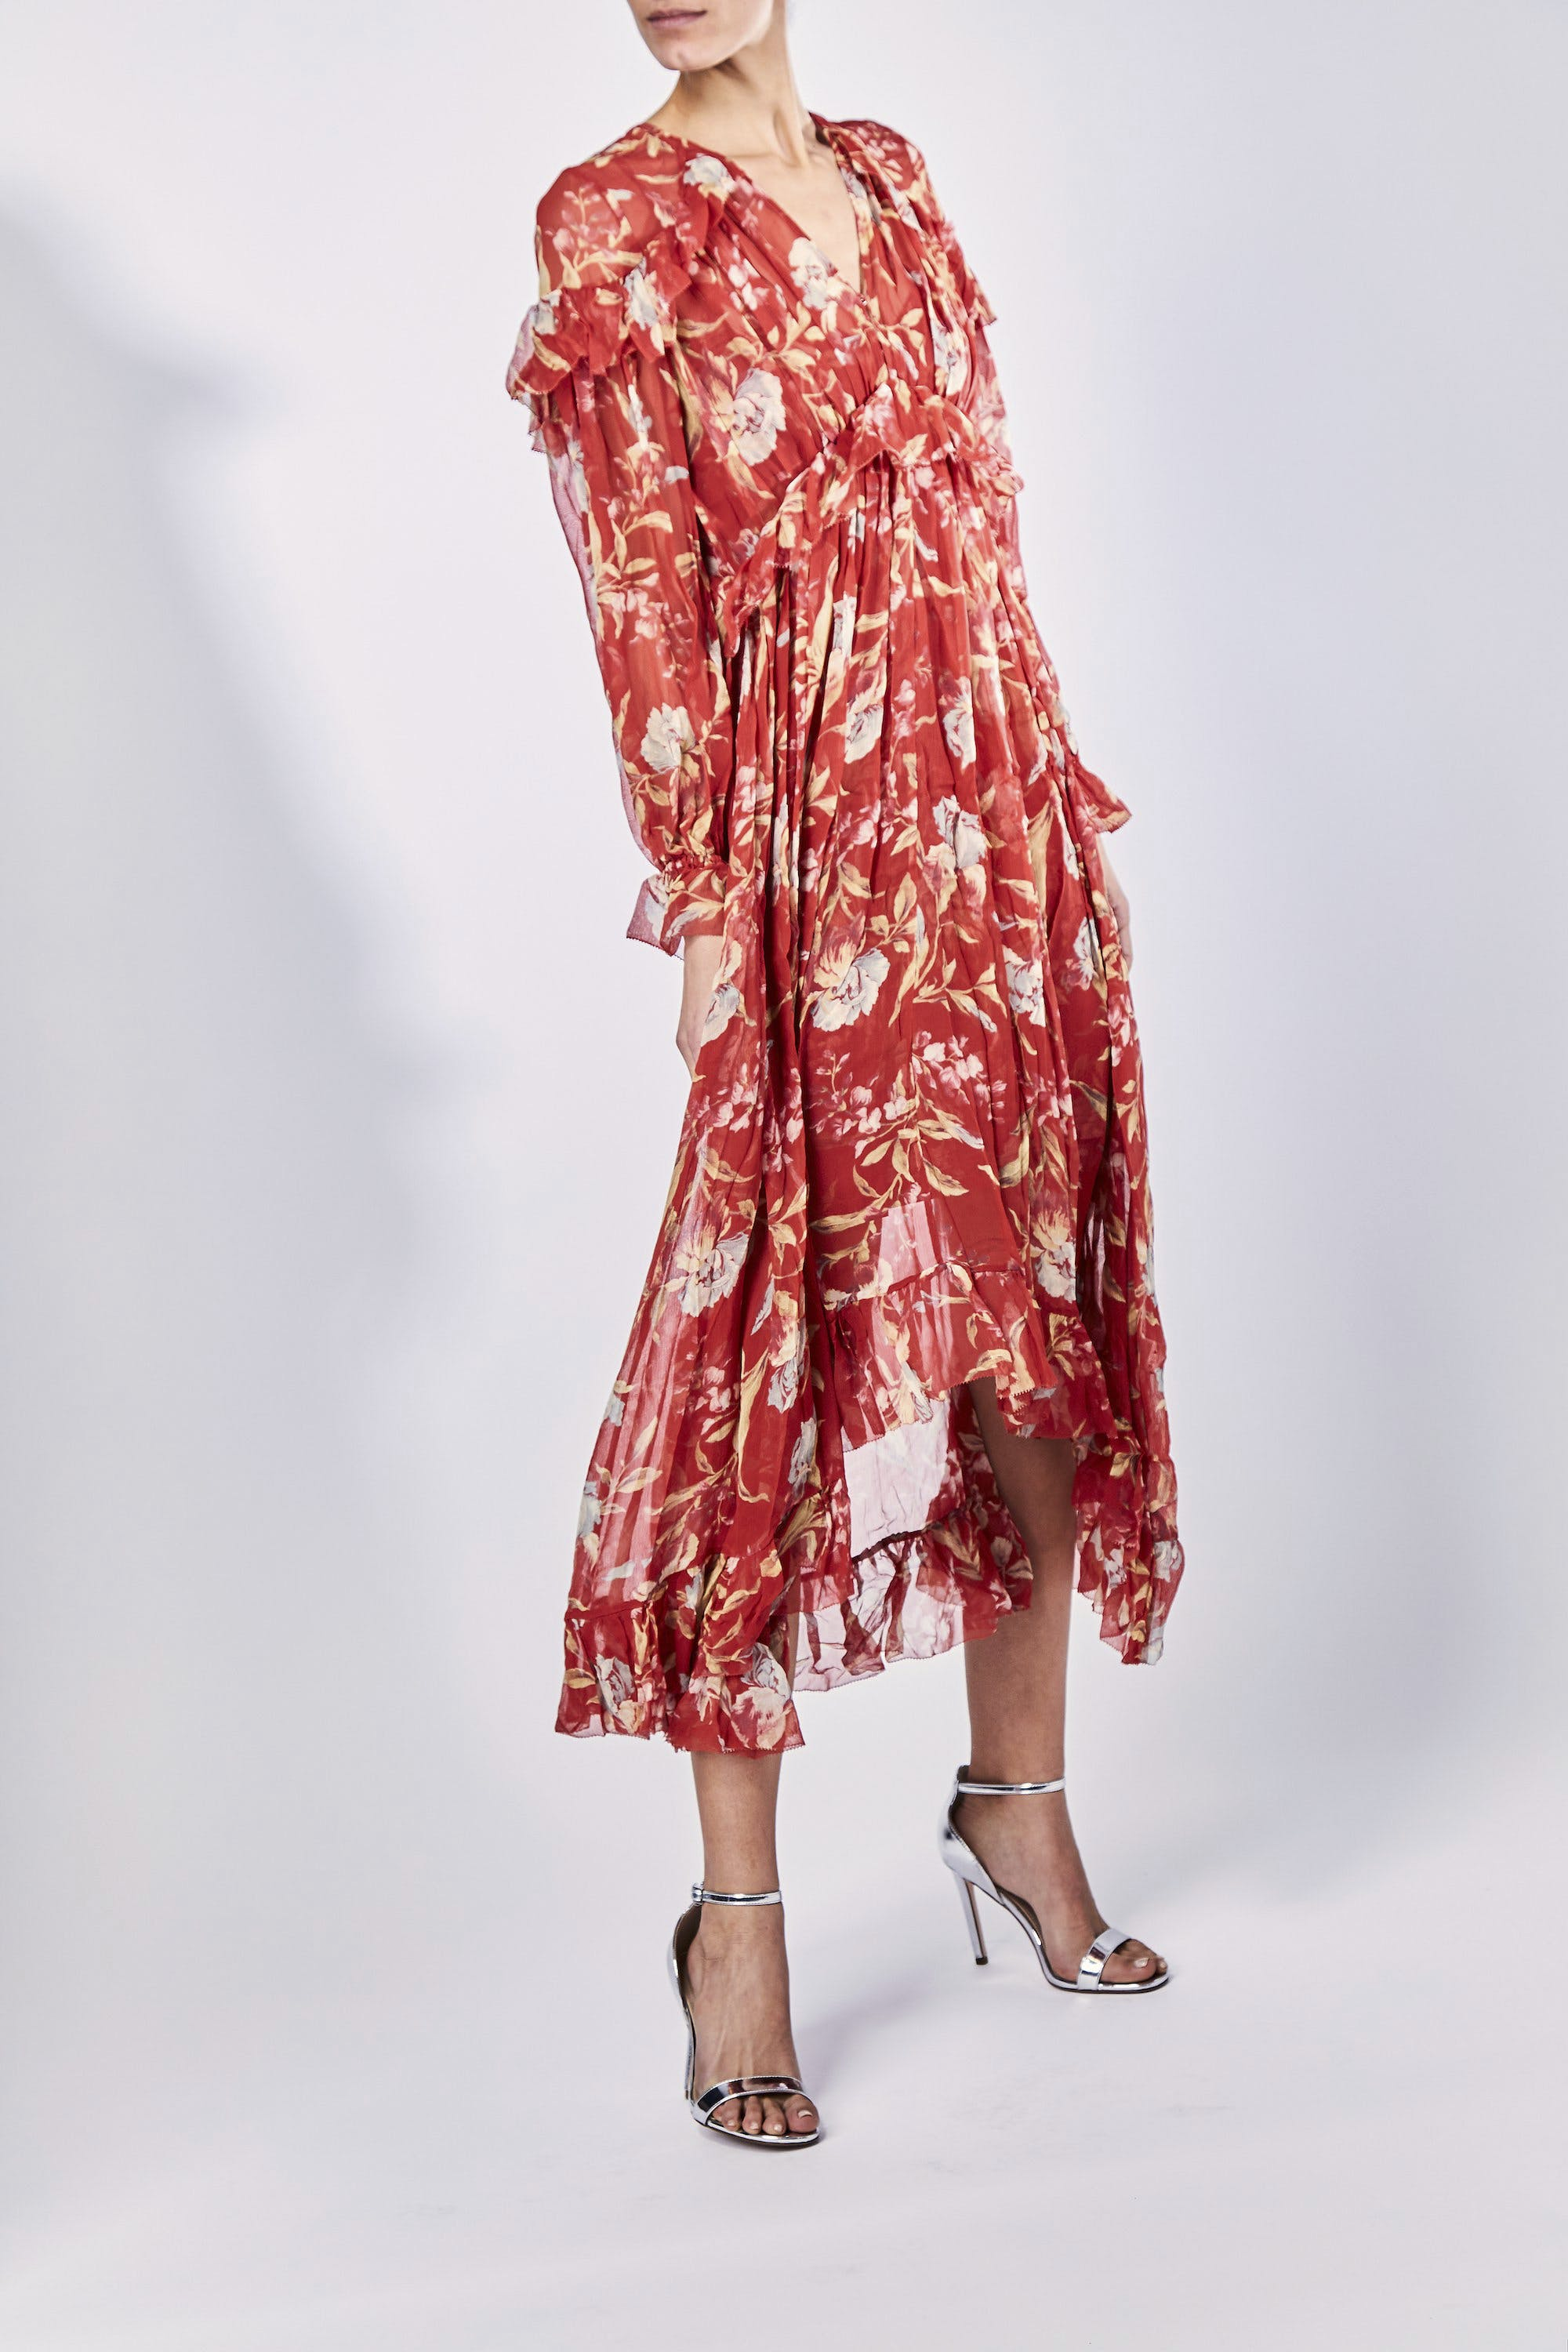 zimmermann-ss18-article-08